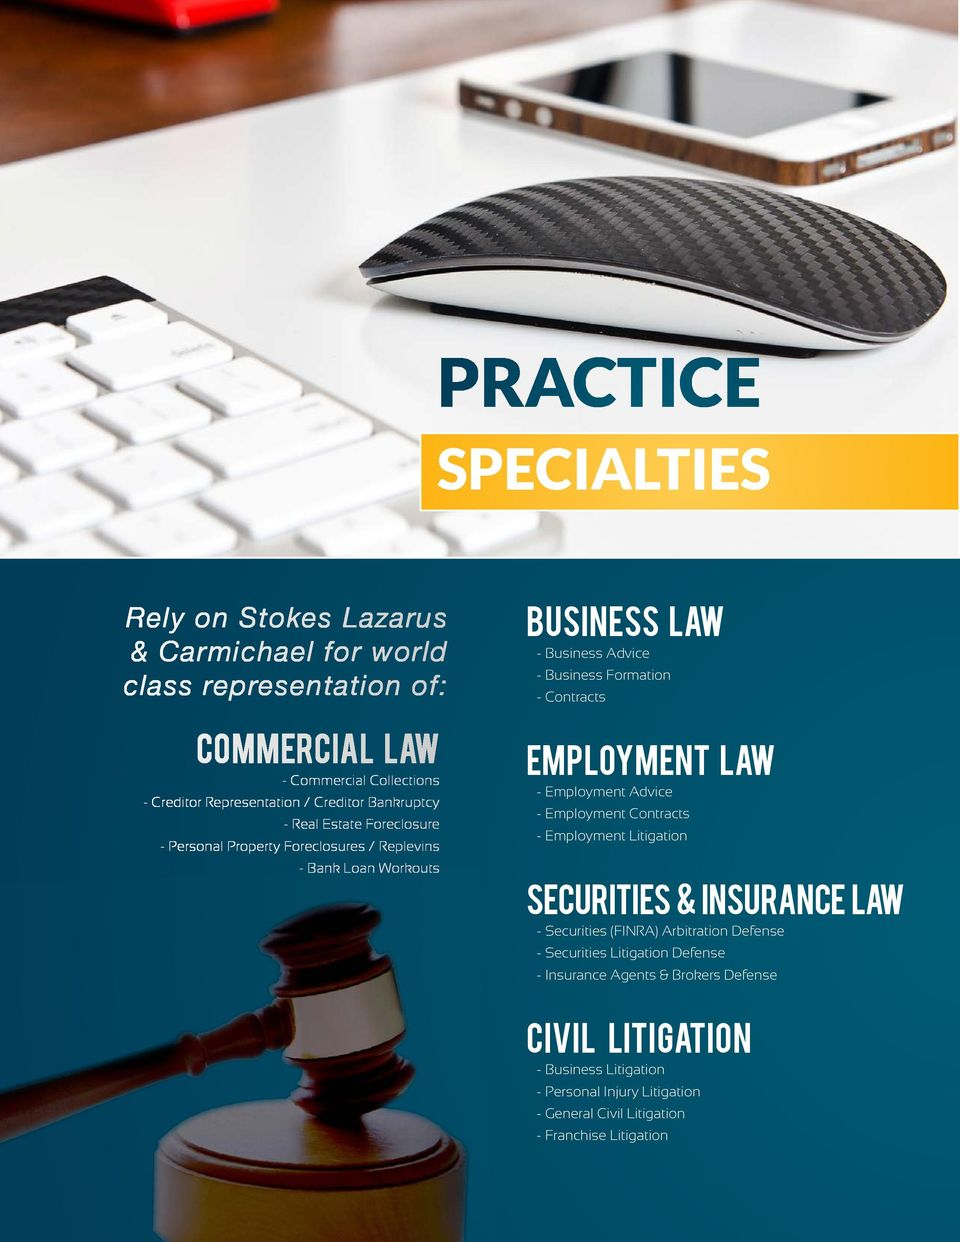 Employment Law - Employment Advice - Employment Contracts - Employment Litigation Securities & Insurance L aw - Securities (FINRA) Arbitration Defense - Securities